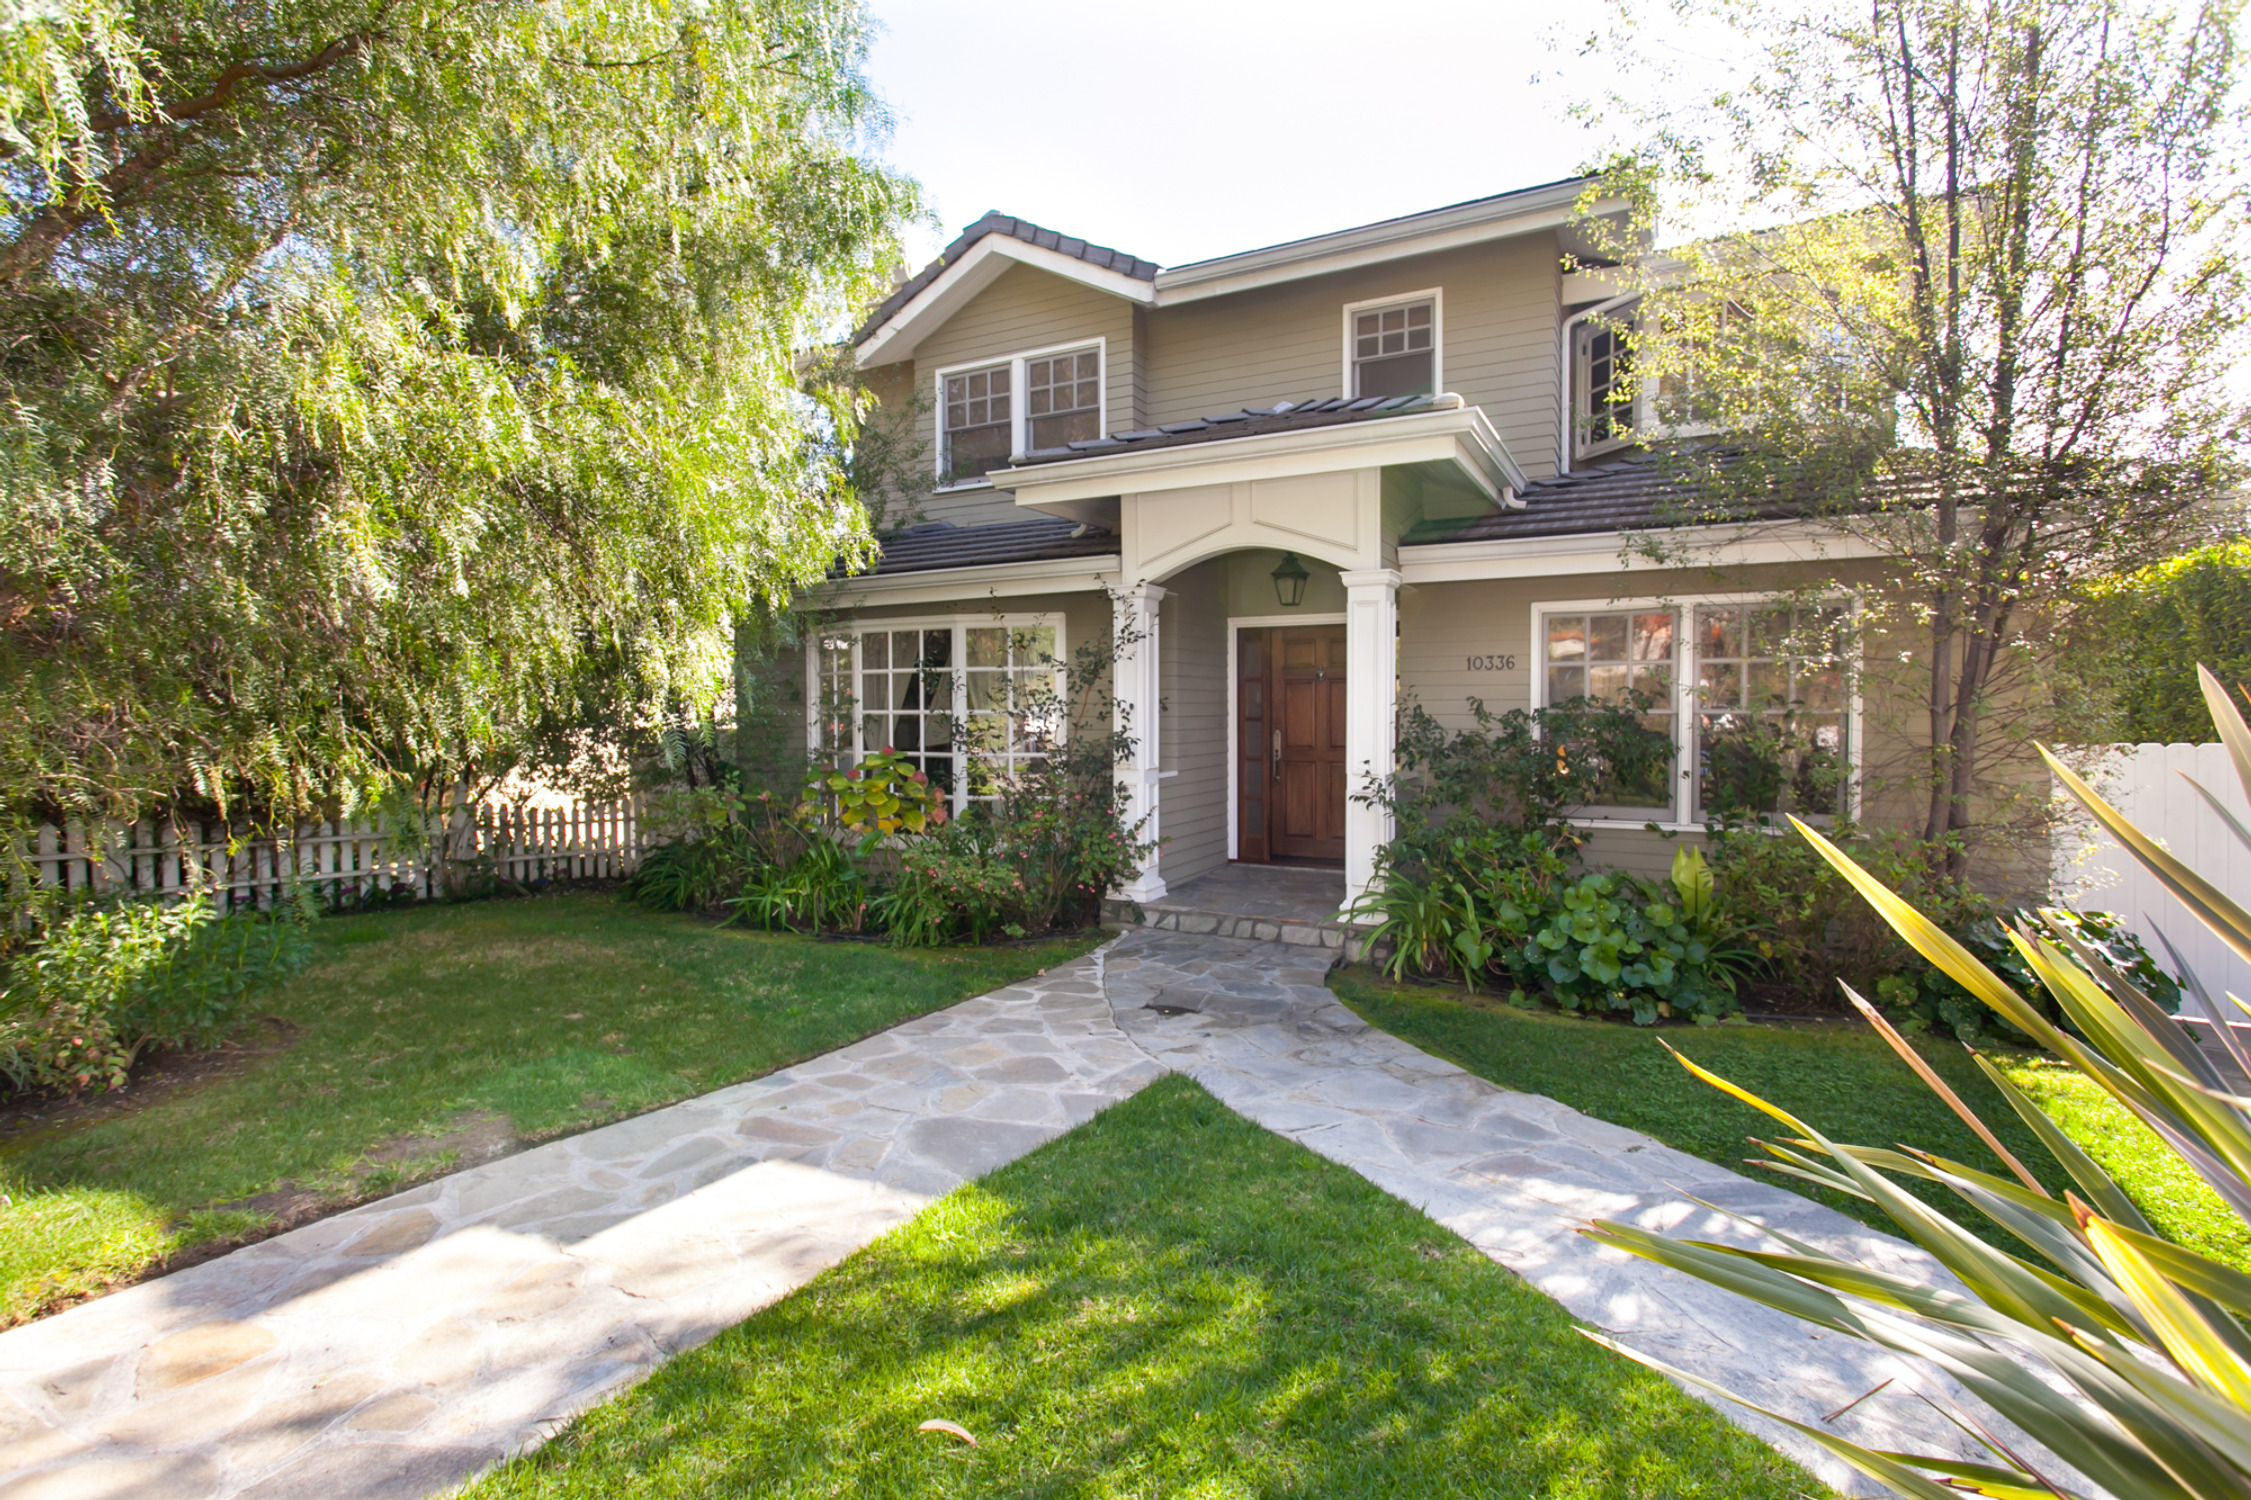 Modern Family' Home Seeks New Family - Zillow Porchlight - ^